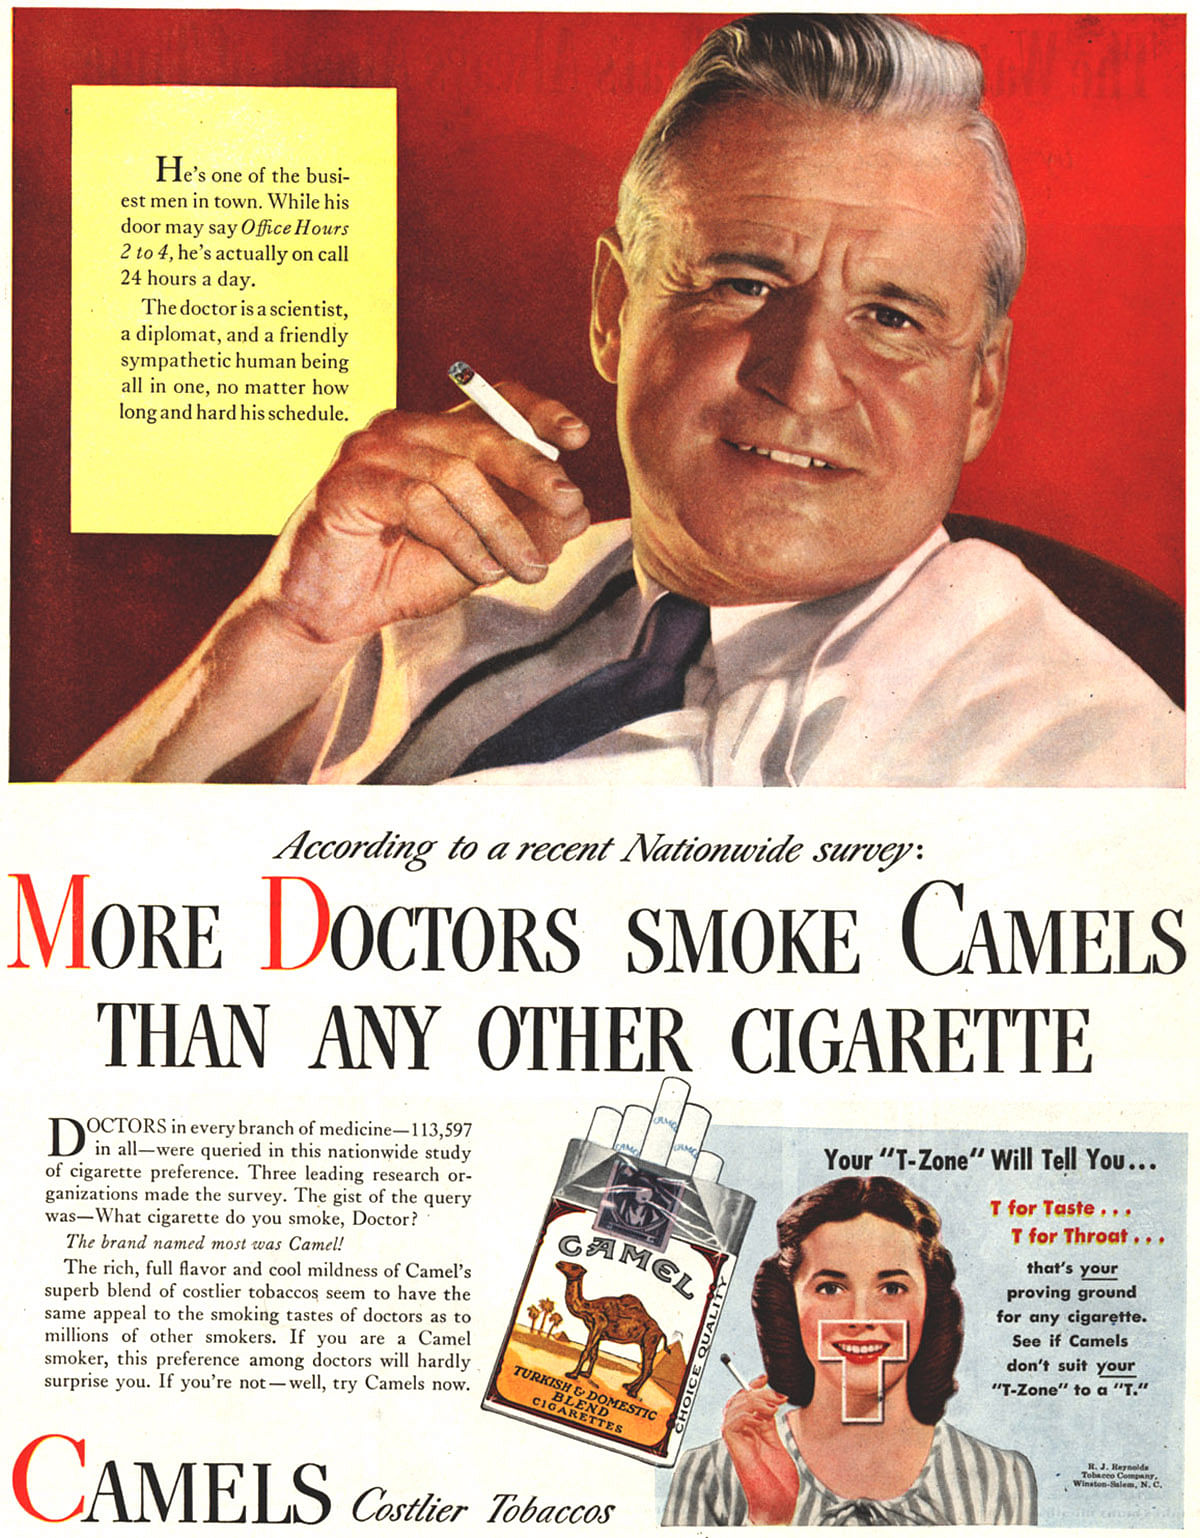 """The Camel cigarette advertisement that showed a 'doctor' endorsing the product. (Photo: <a href=""""https://in.pinterest.com/pin/347832771190670536/"""">Pinterest)</a>"""